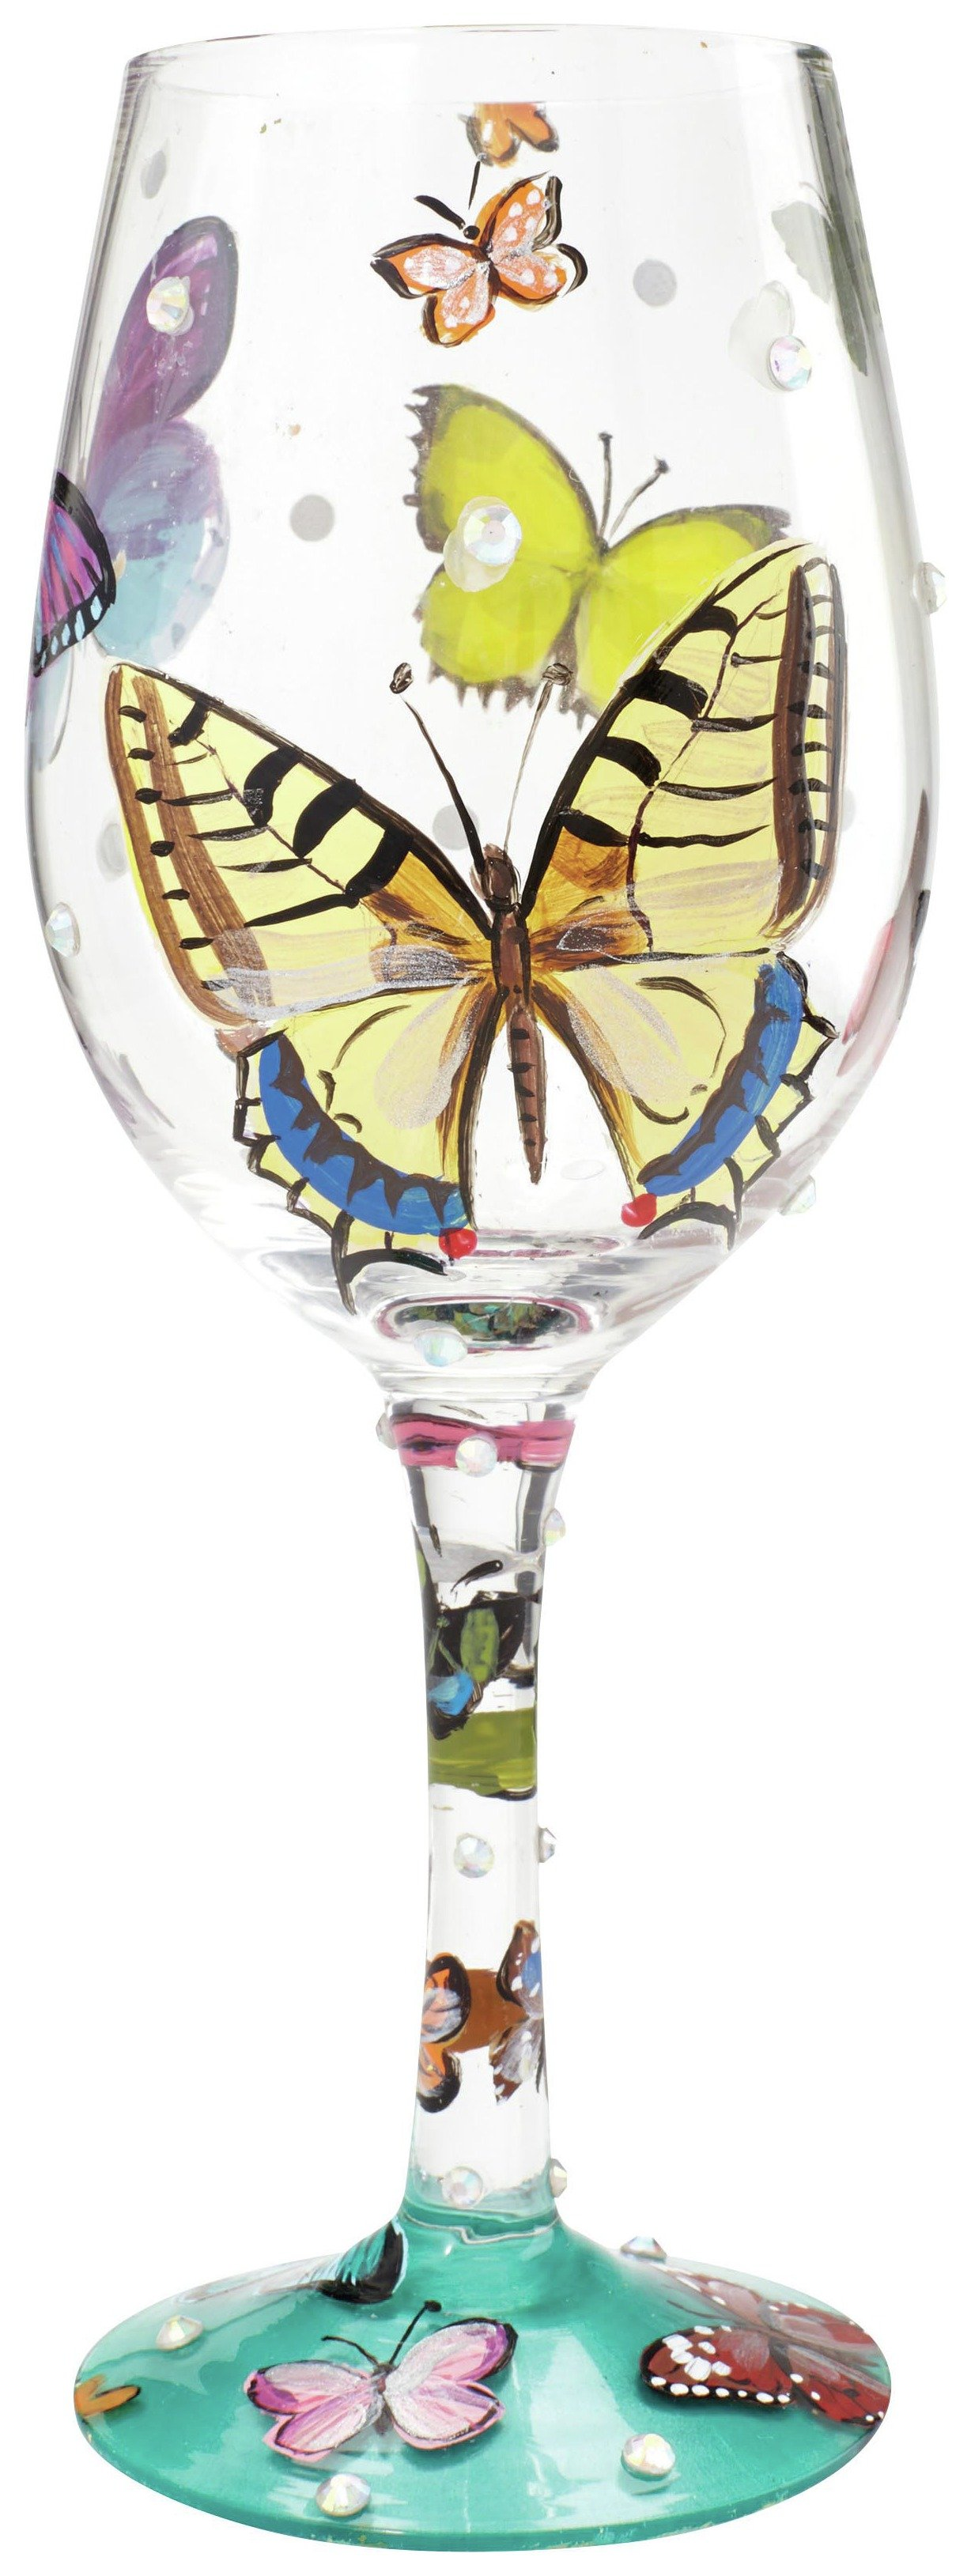 Image of Lolita Butterfly Wishes Wine Glass.